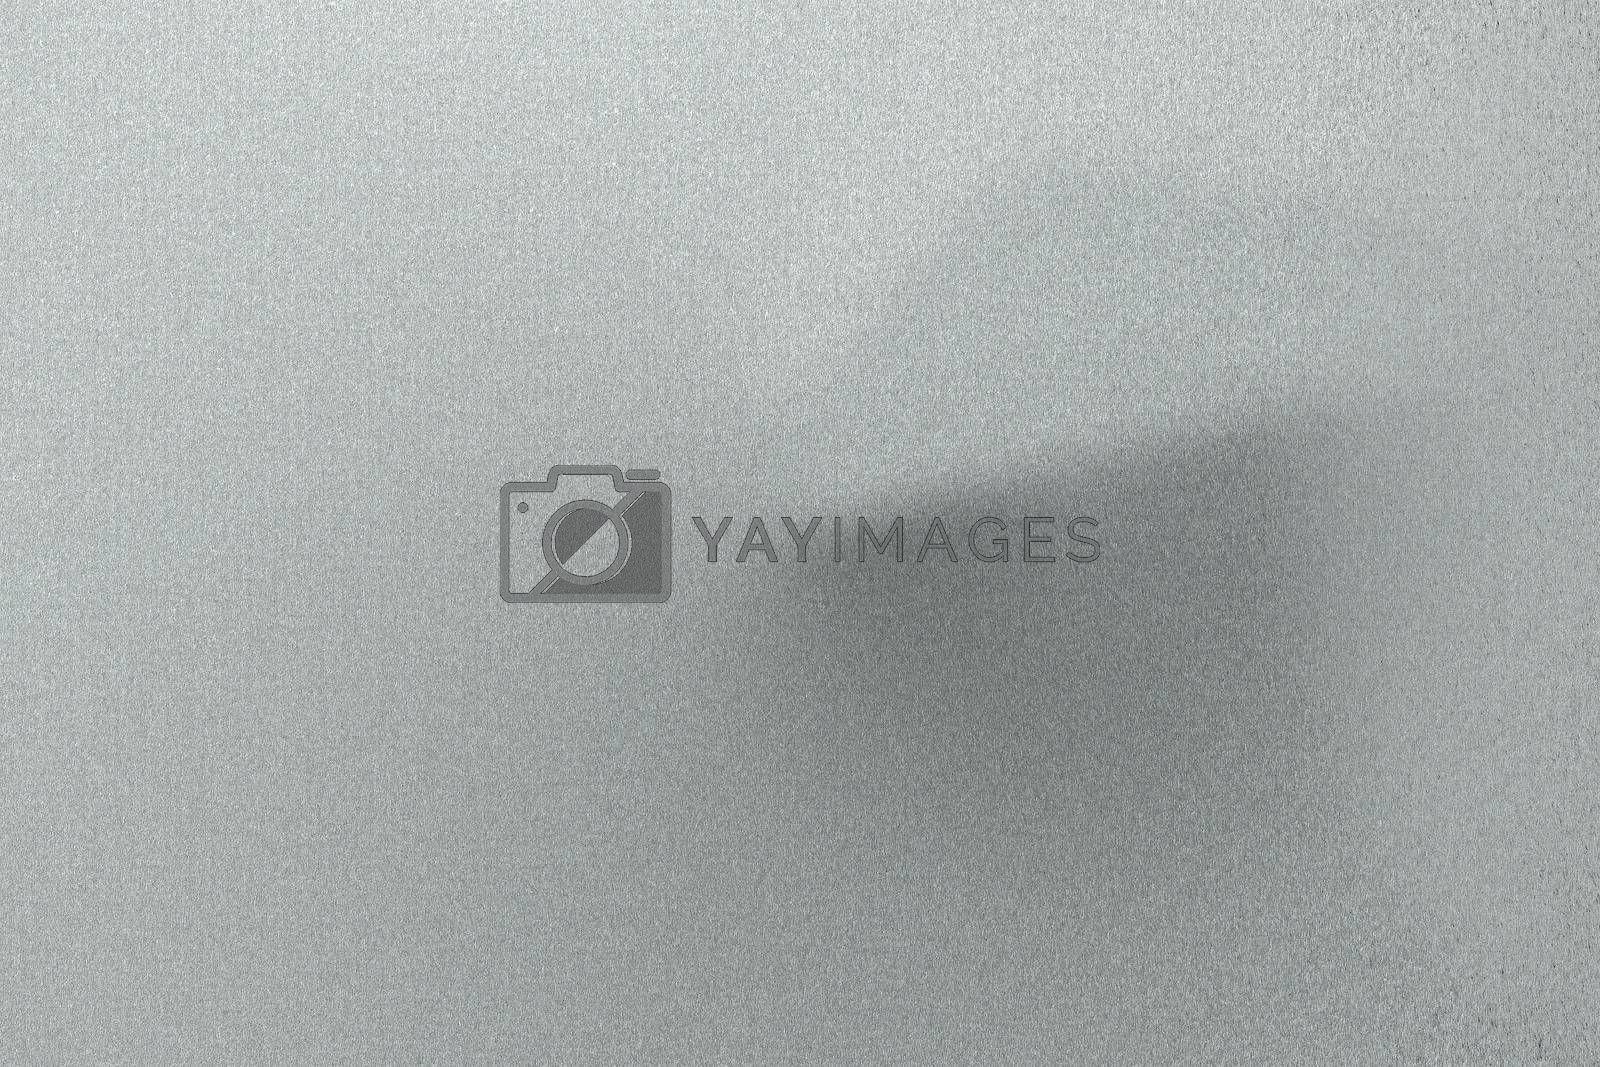 Royalty free image of Brushed light gray wave metallic sheet, abstract texture background by mouu007